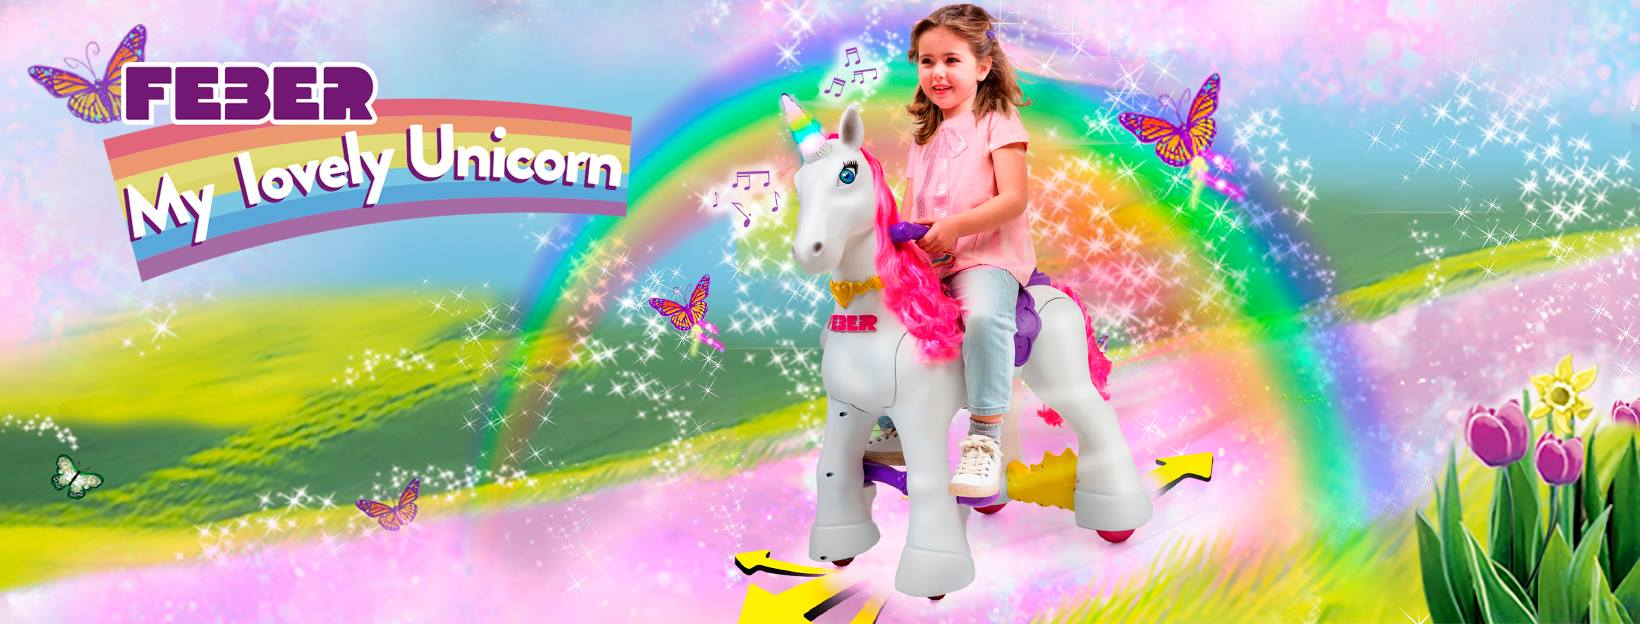 Unicornio Feber: My Lovely Unicorn